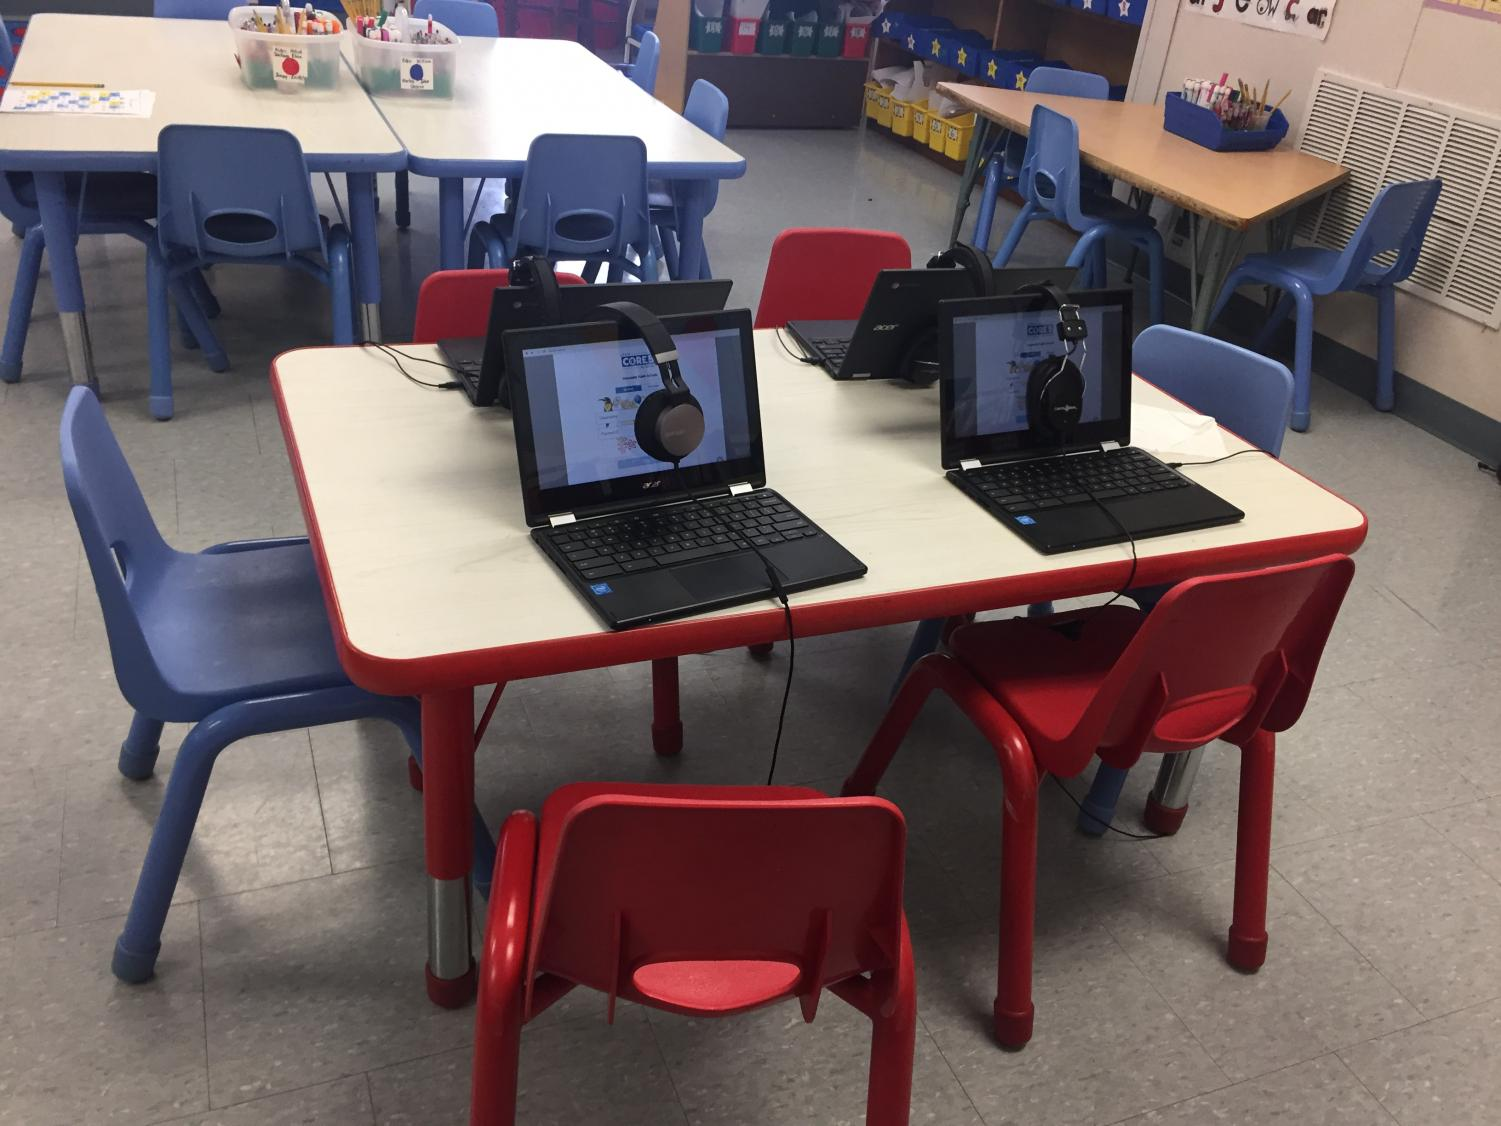 A kindergarten classroom at East Gloucester Elementary School provides Chromebooks and headphones for students